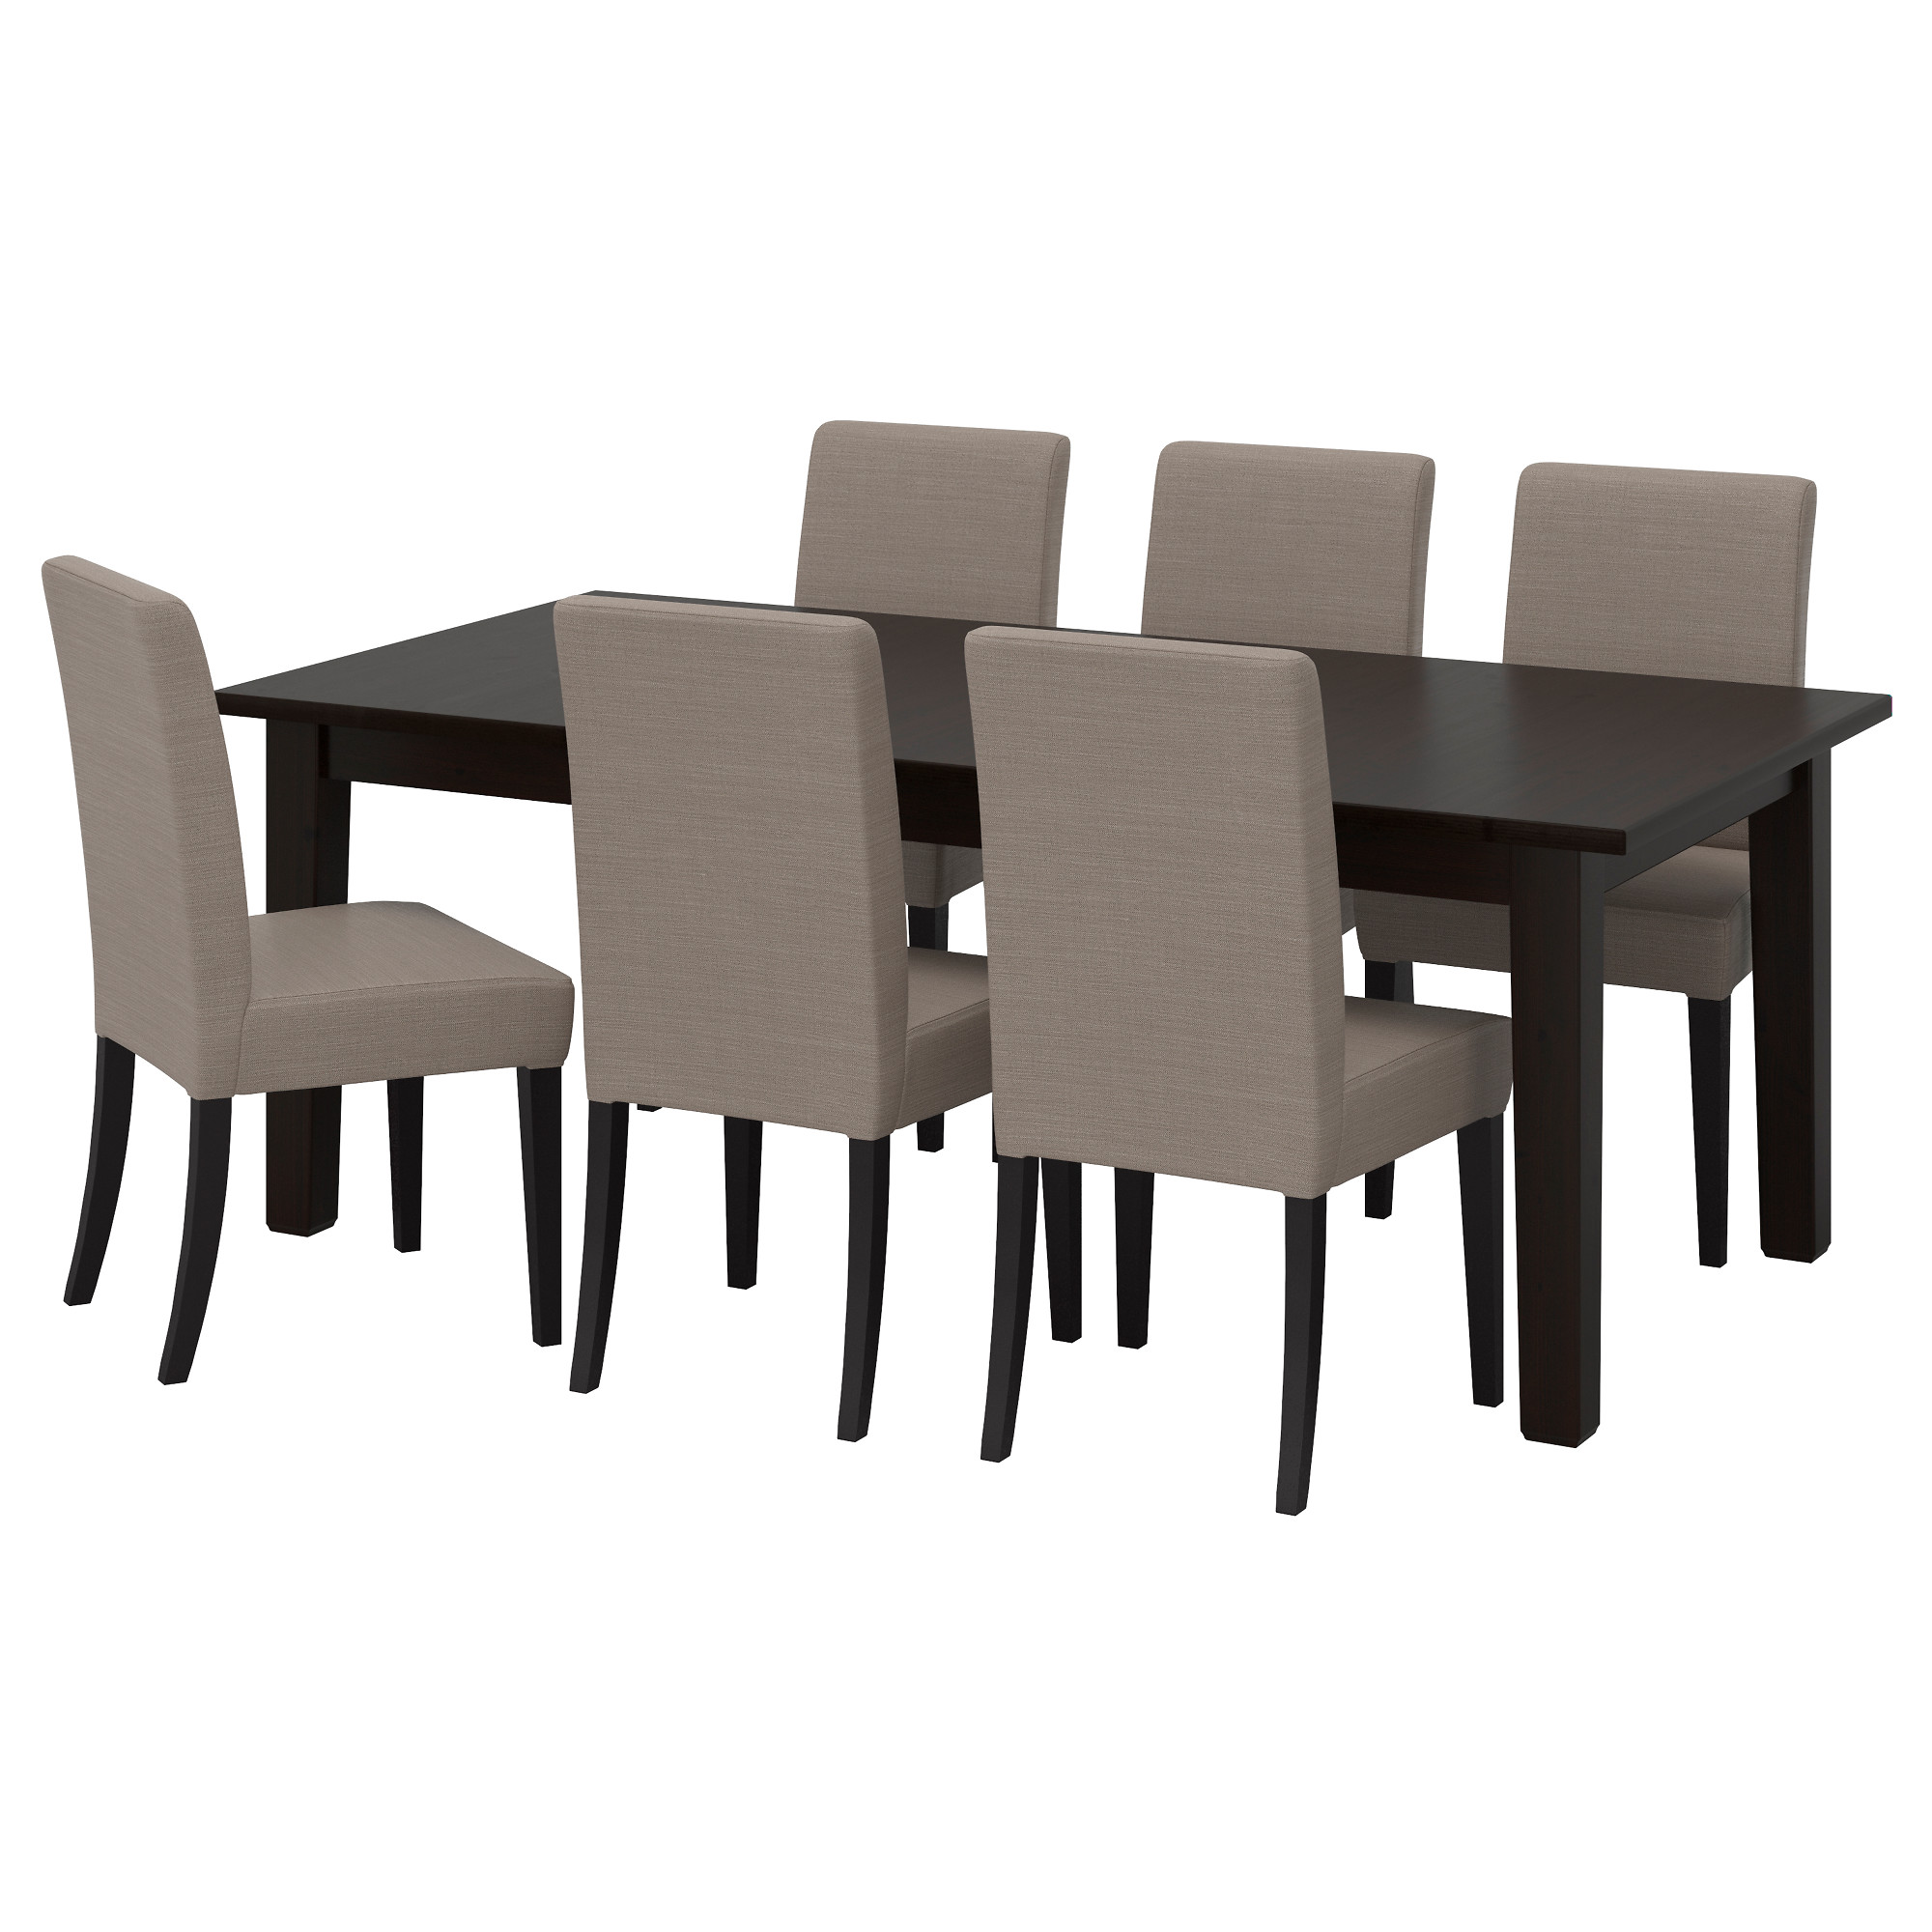 Beautiful STORNÄS / HENRIKSDAL Table And 6 Chairs, Brown Black, Nolhaga Gray Beige